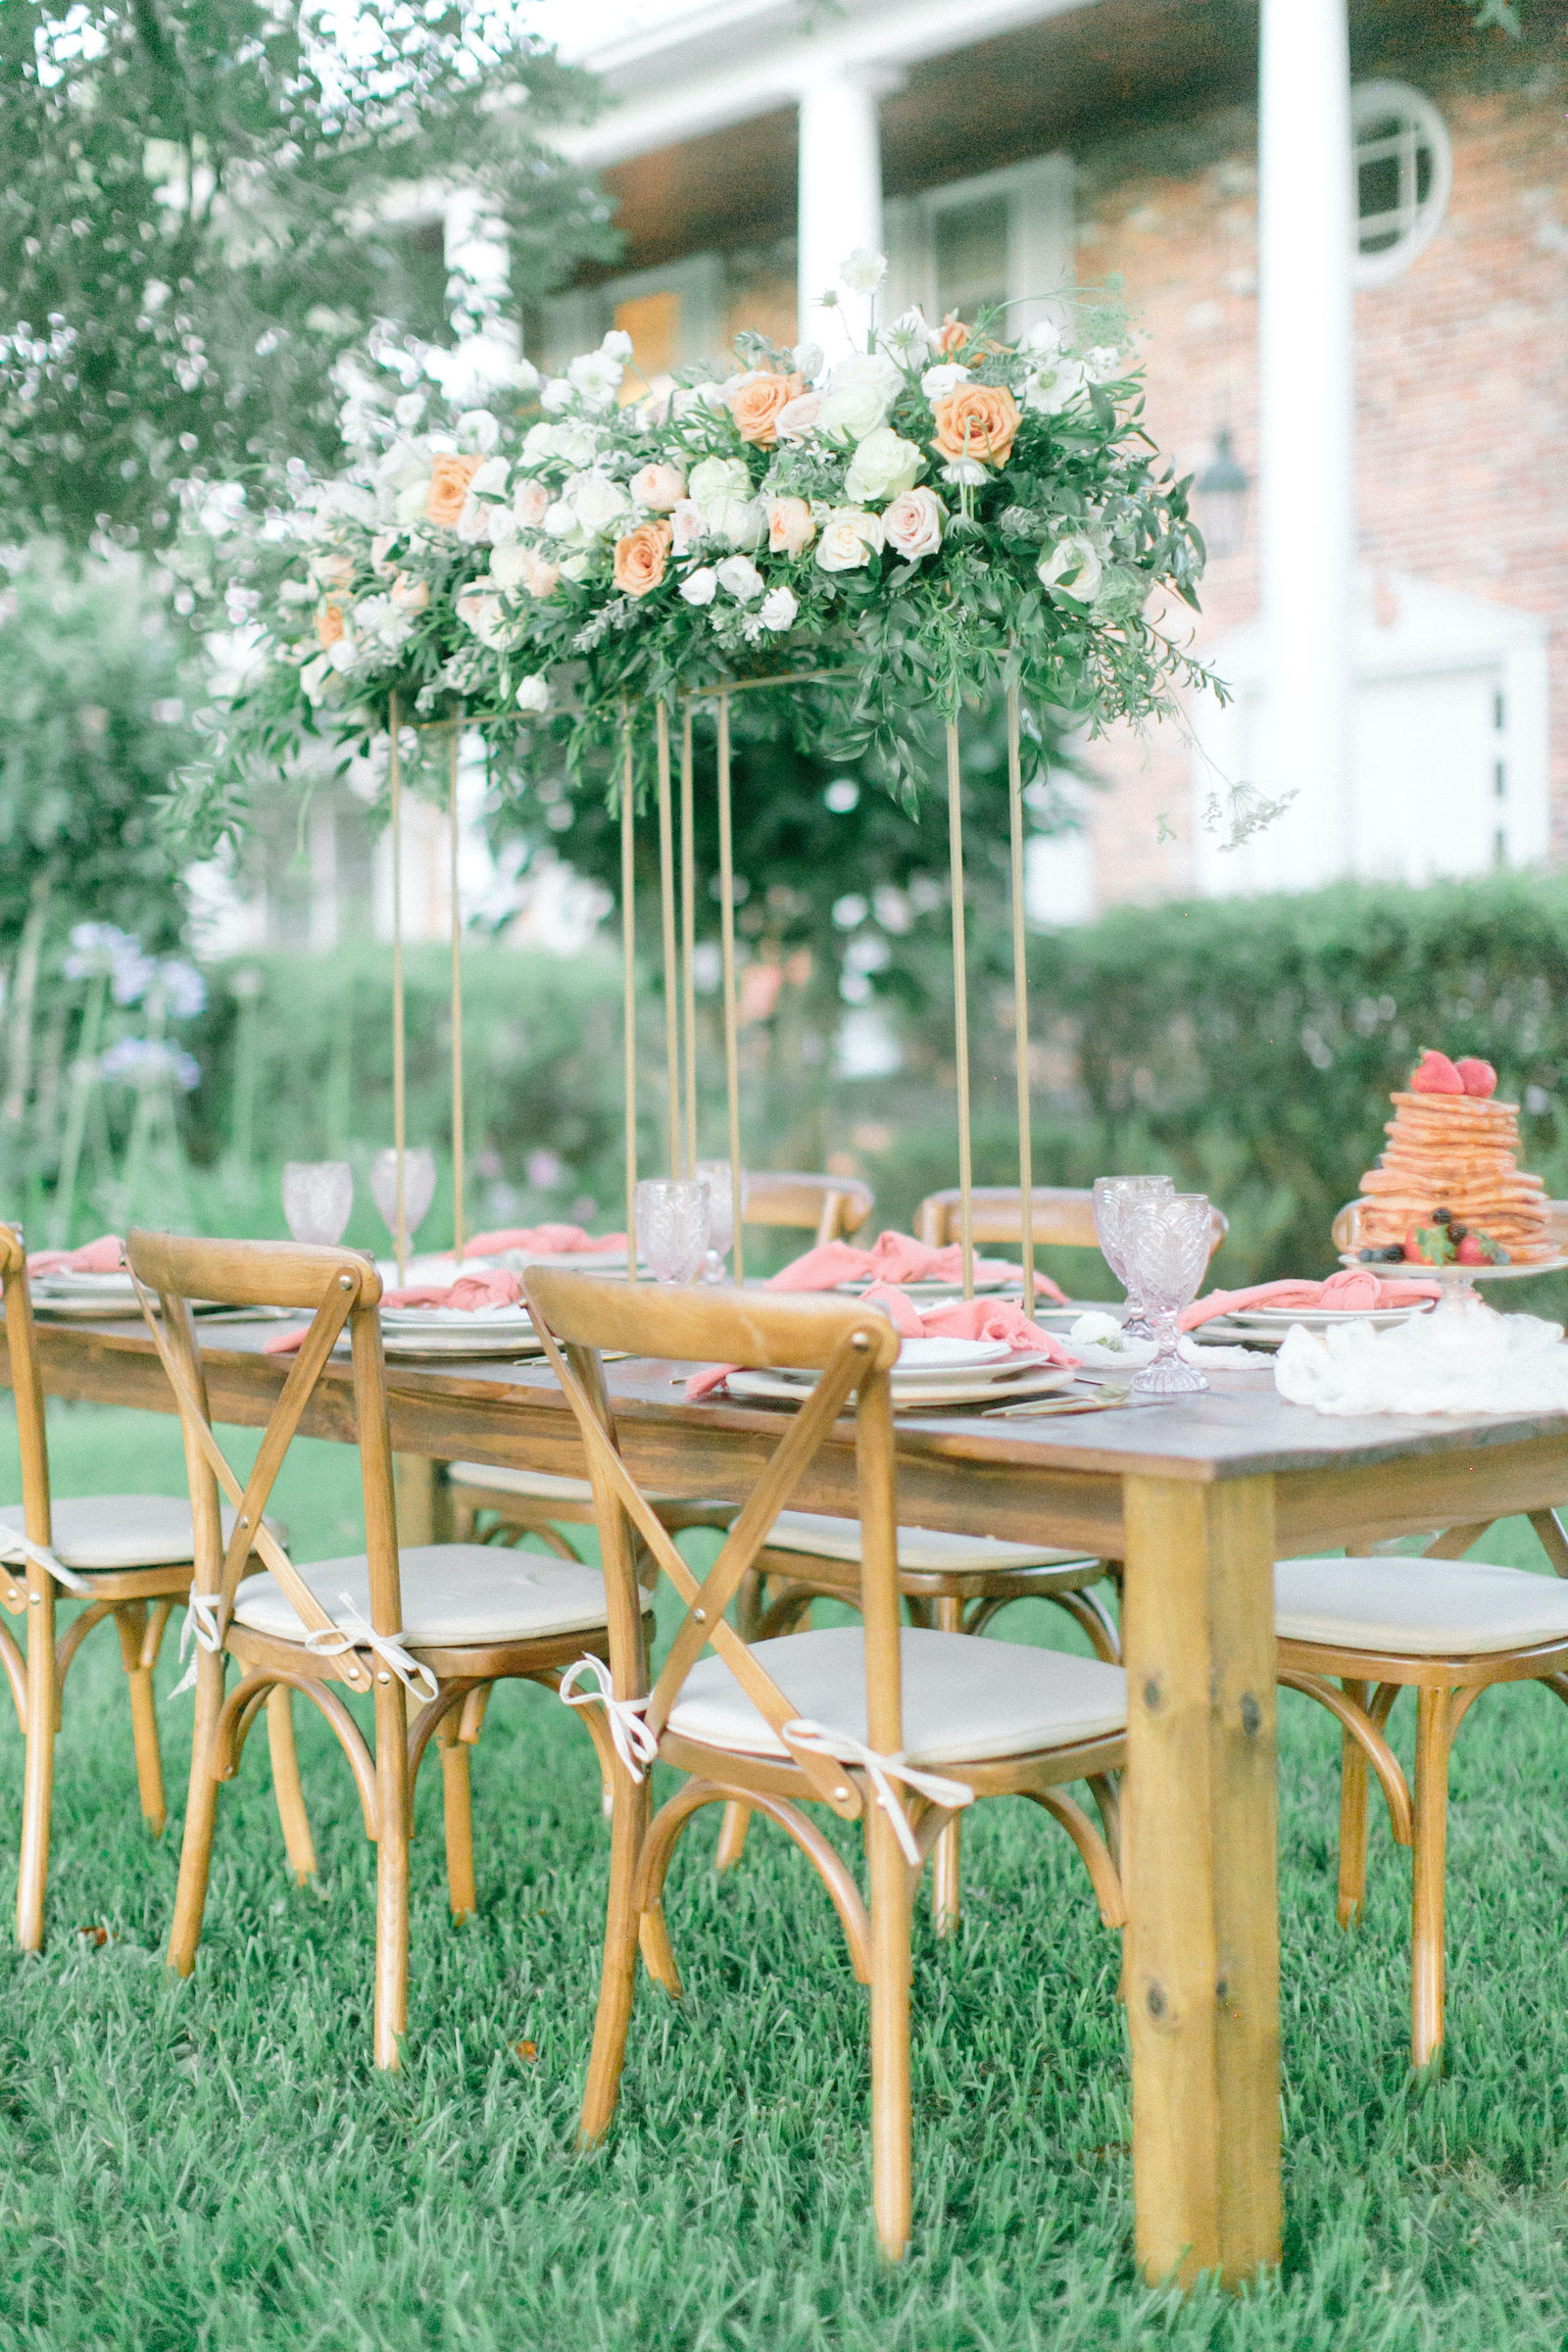 Outdoor Styled Shoot Brunch Breakfast Wedding Reception Wood Farm Table with French Country Cross Back Chairs and Place Setting with Gold Flatware and Whitewash Wood Charger Plate | Natural White Champagne and Peach Tall Centerpiece with Roses Queen Anne Lace and Greenery on Gold Geometric Stand | Blush Pink Napkins and Vintage Glassware Goblets at Place Settings | Crepe Pancake Wedding Cake